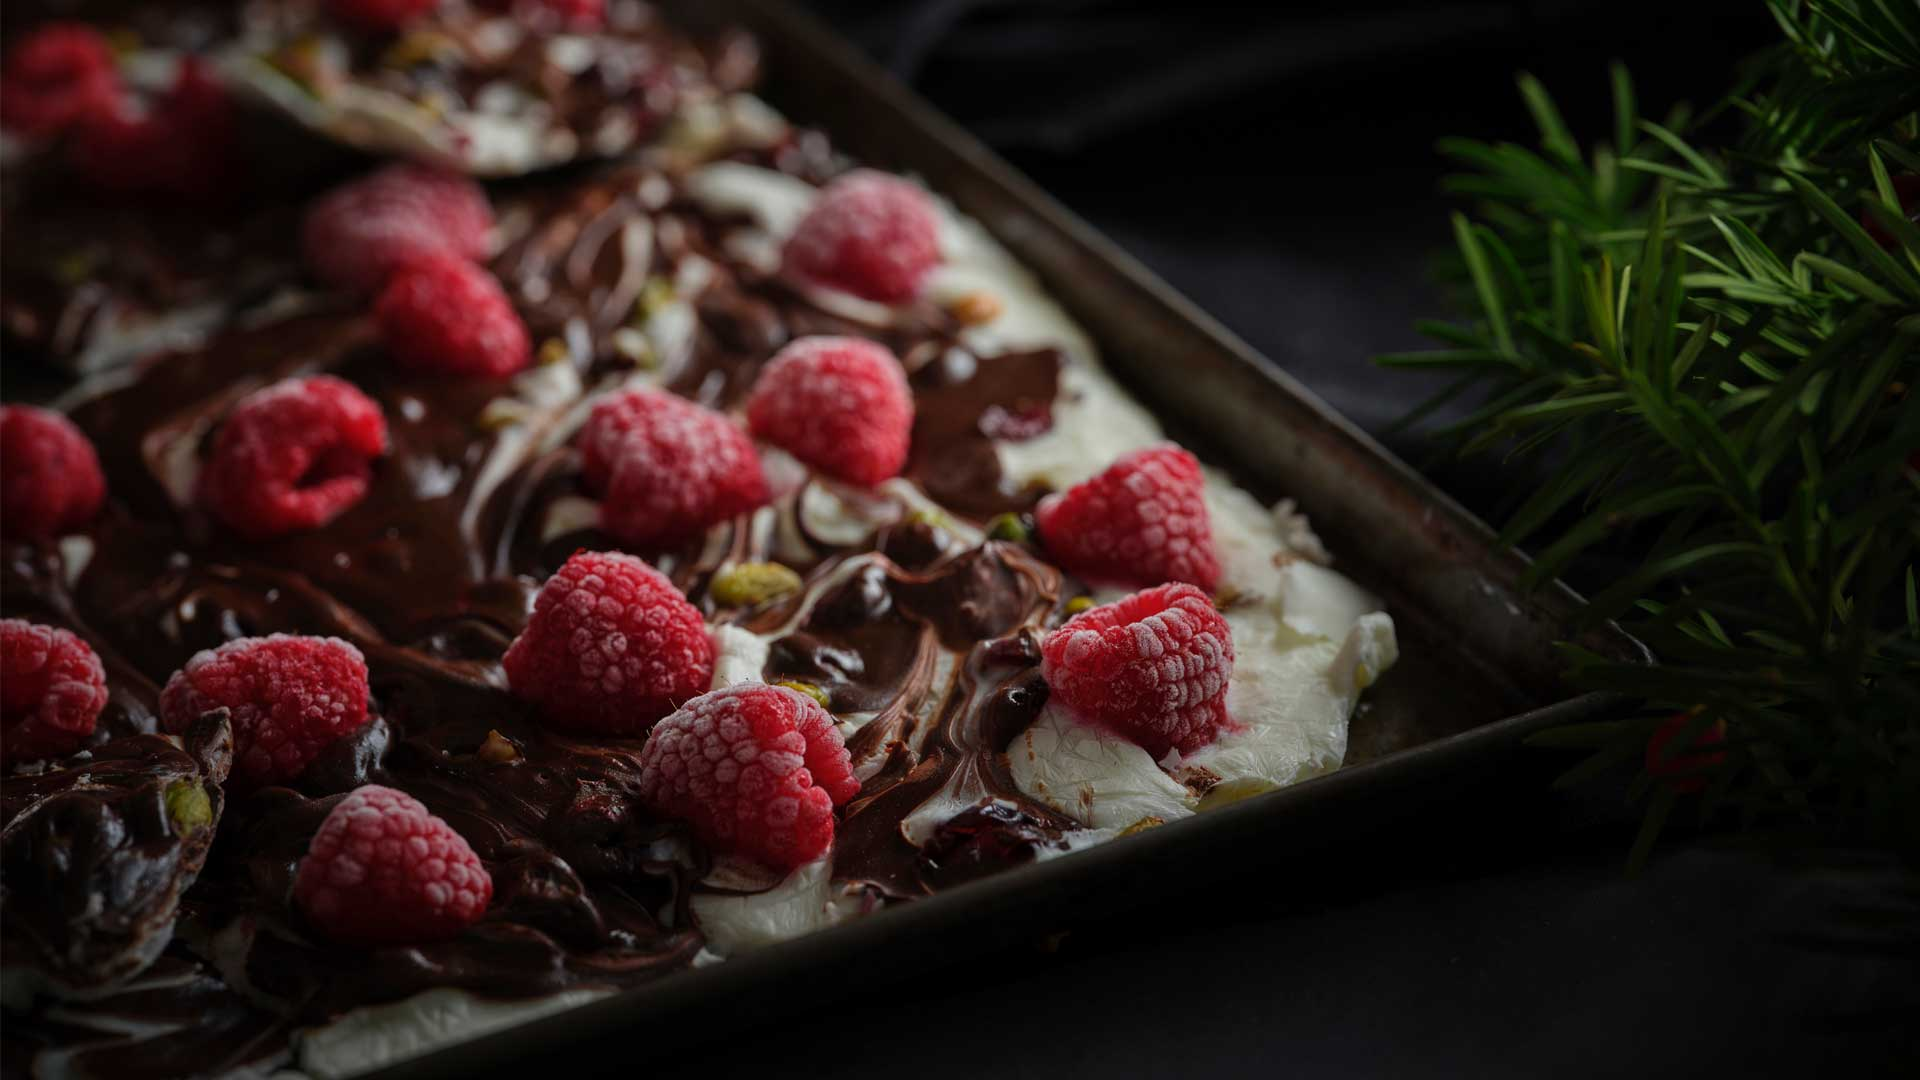 Yogurt chocolate berry, nuts and seed bark in a pan. Raspberries on top